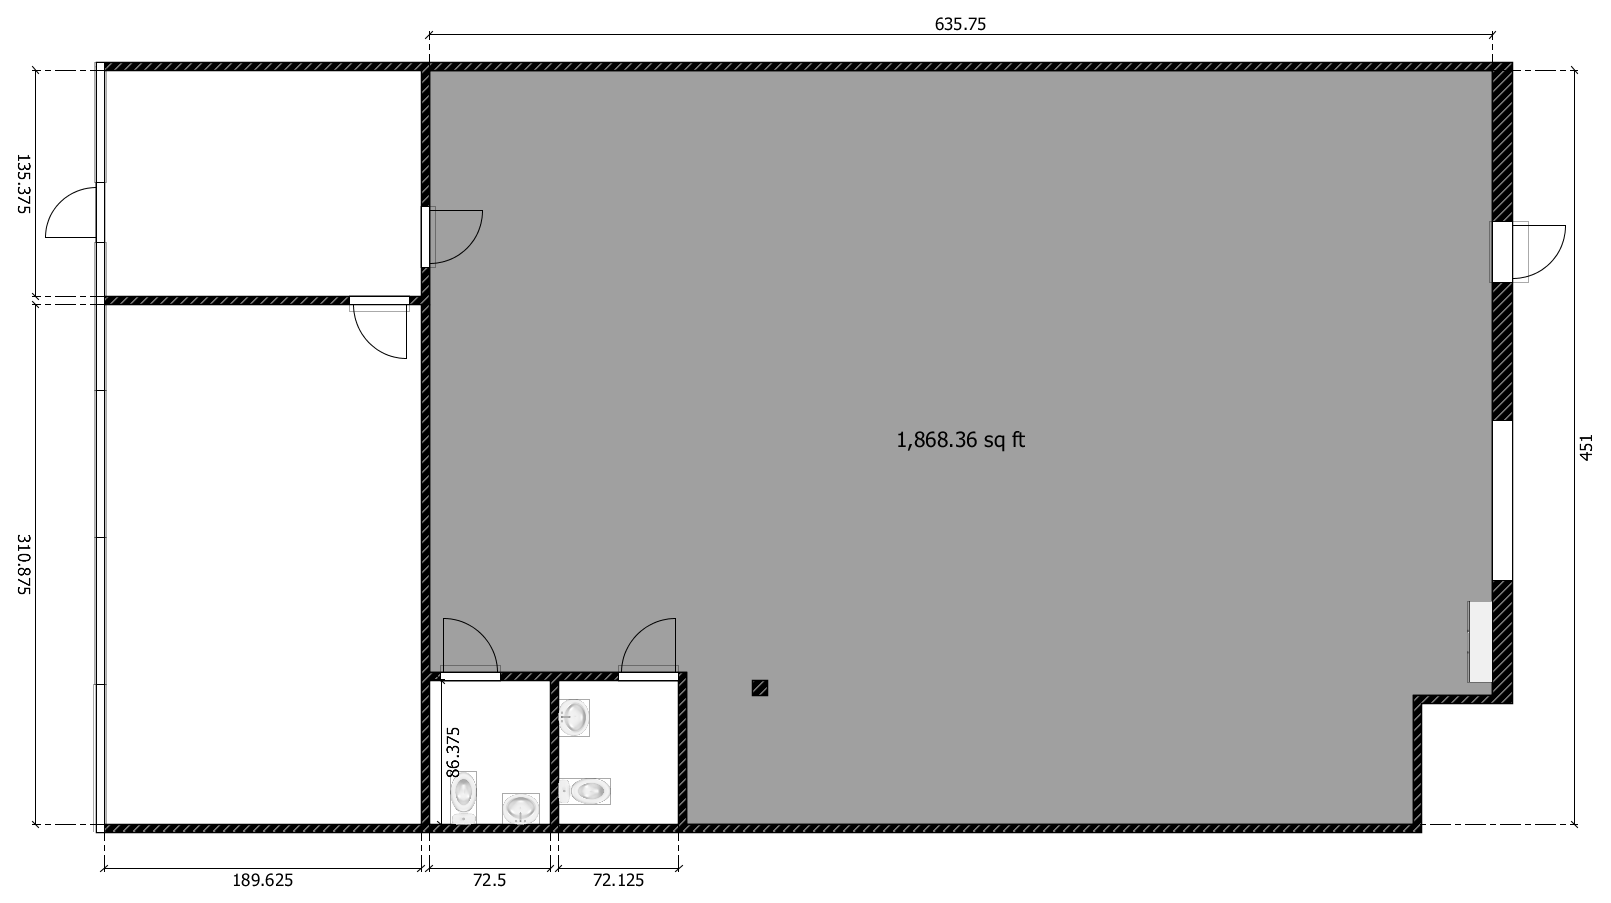 1868 square foot climate controlled warehouse space